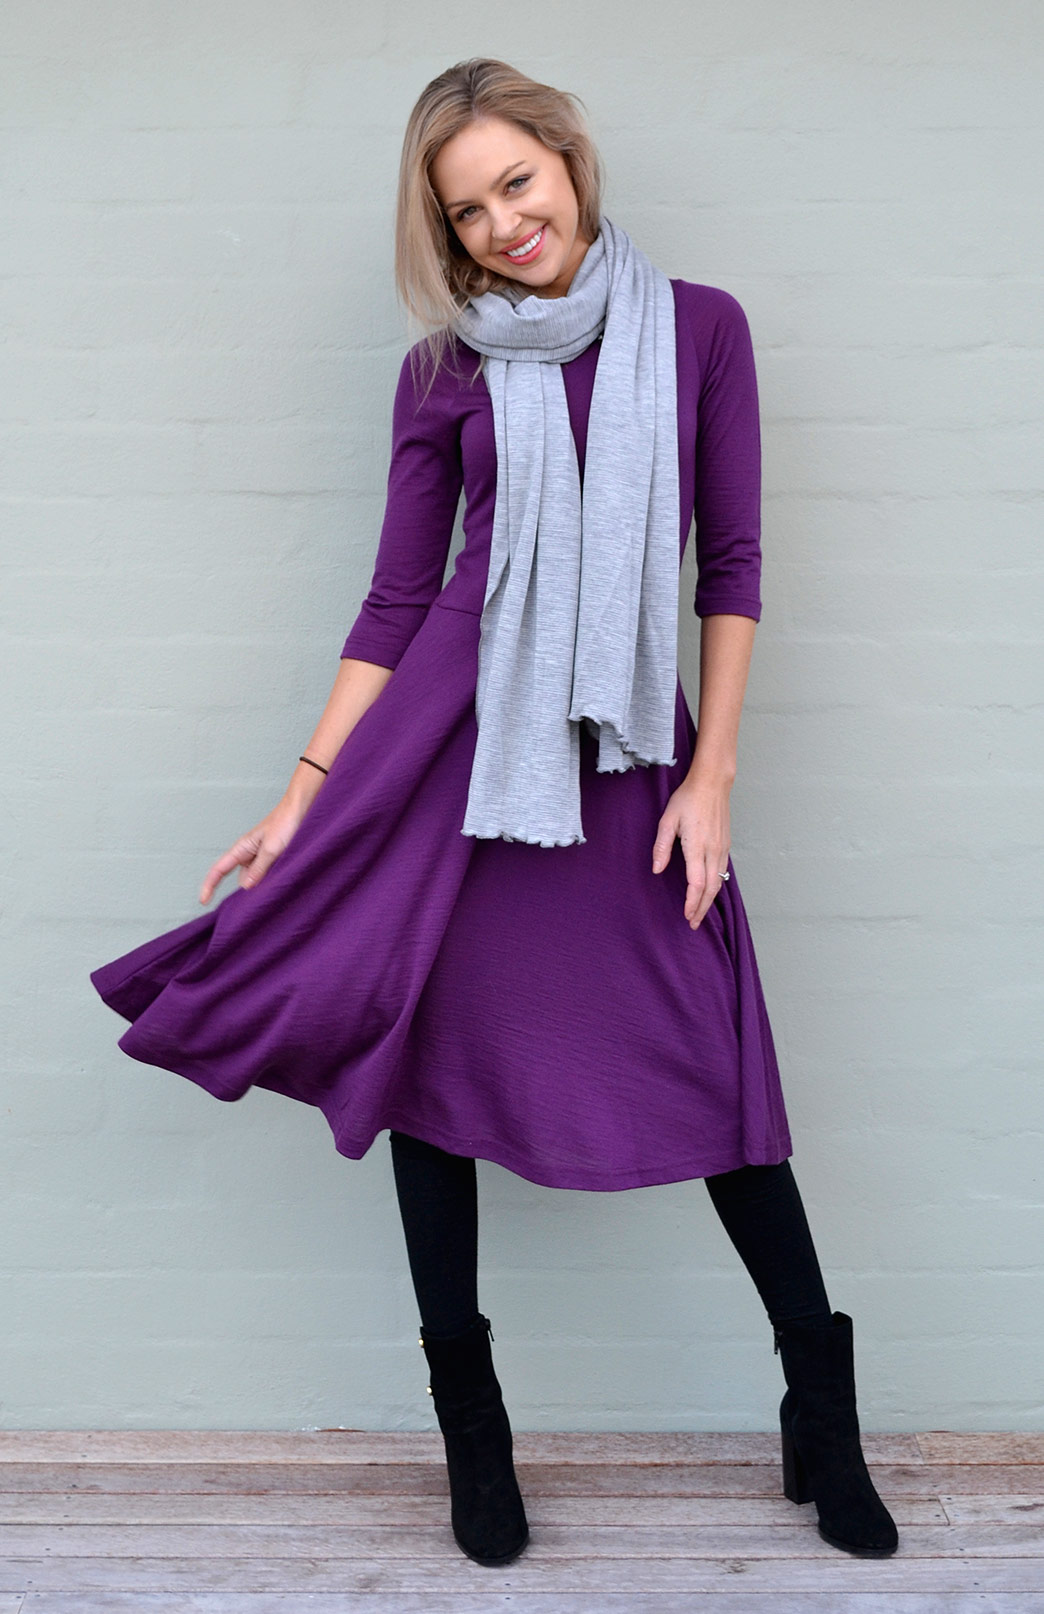 Mary Fit and Flare Dress - Women's Merino Wool Purple Fit and Flare Dress with 3/4 sleeves and pockets - Smitten Merino Tasmania Australia